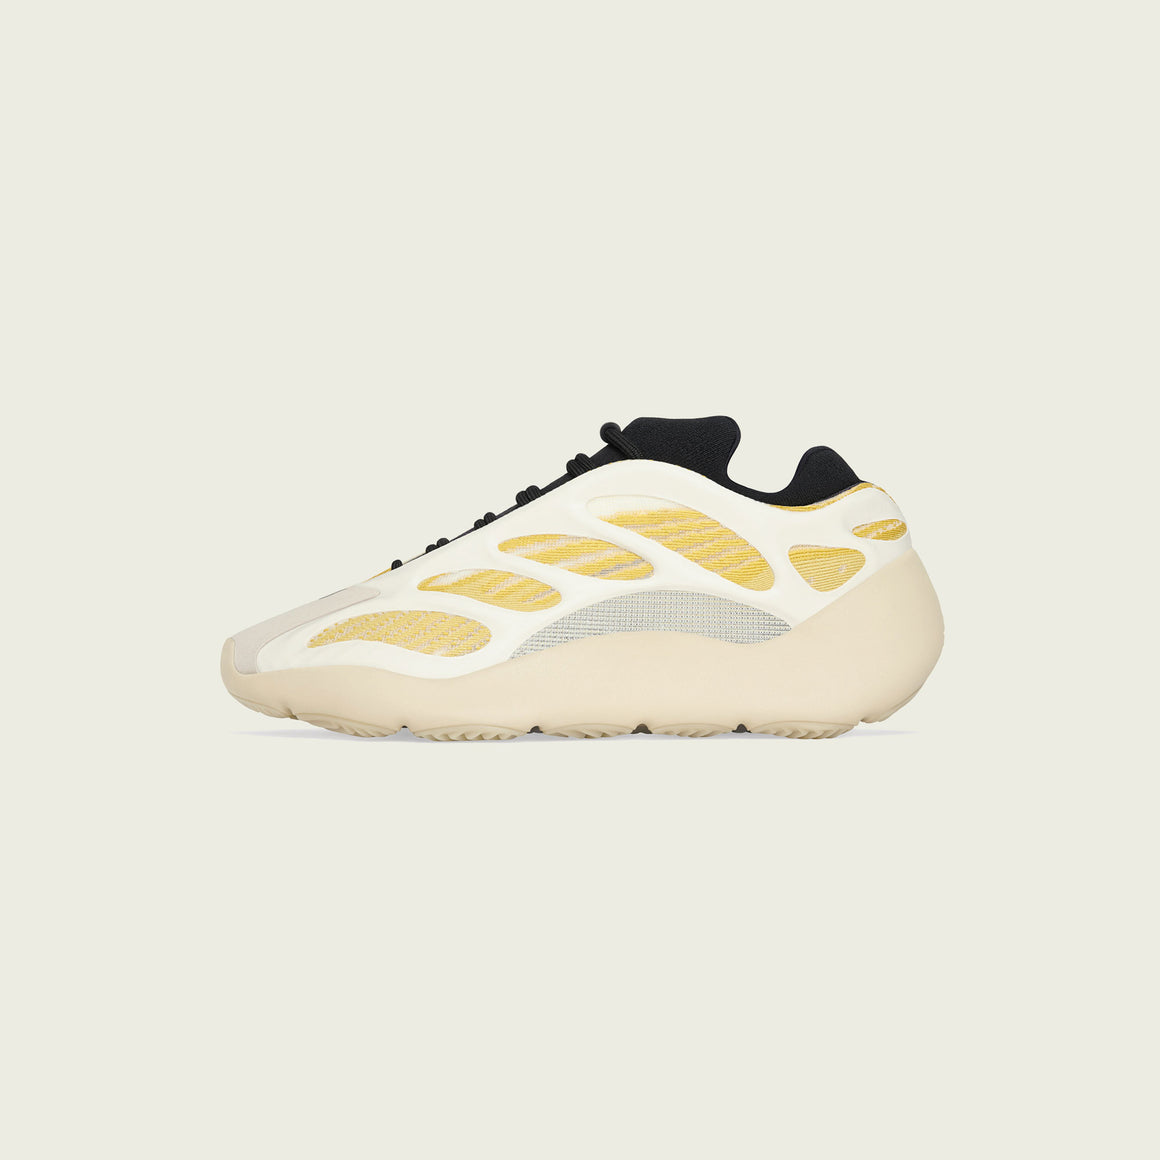 adidas - Yeezy 700v3 - Safflower - Up There